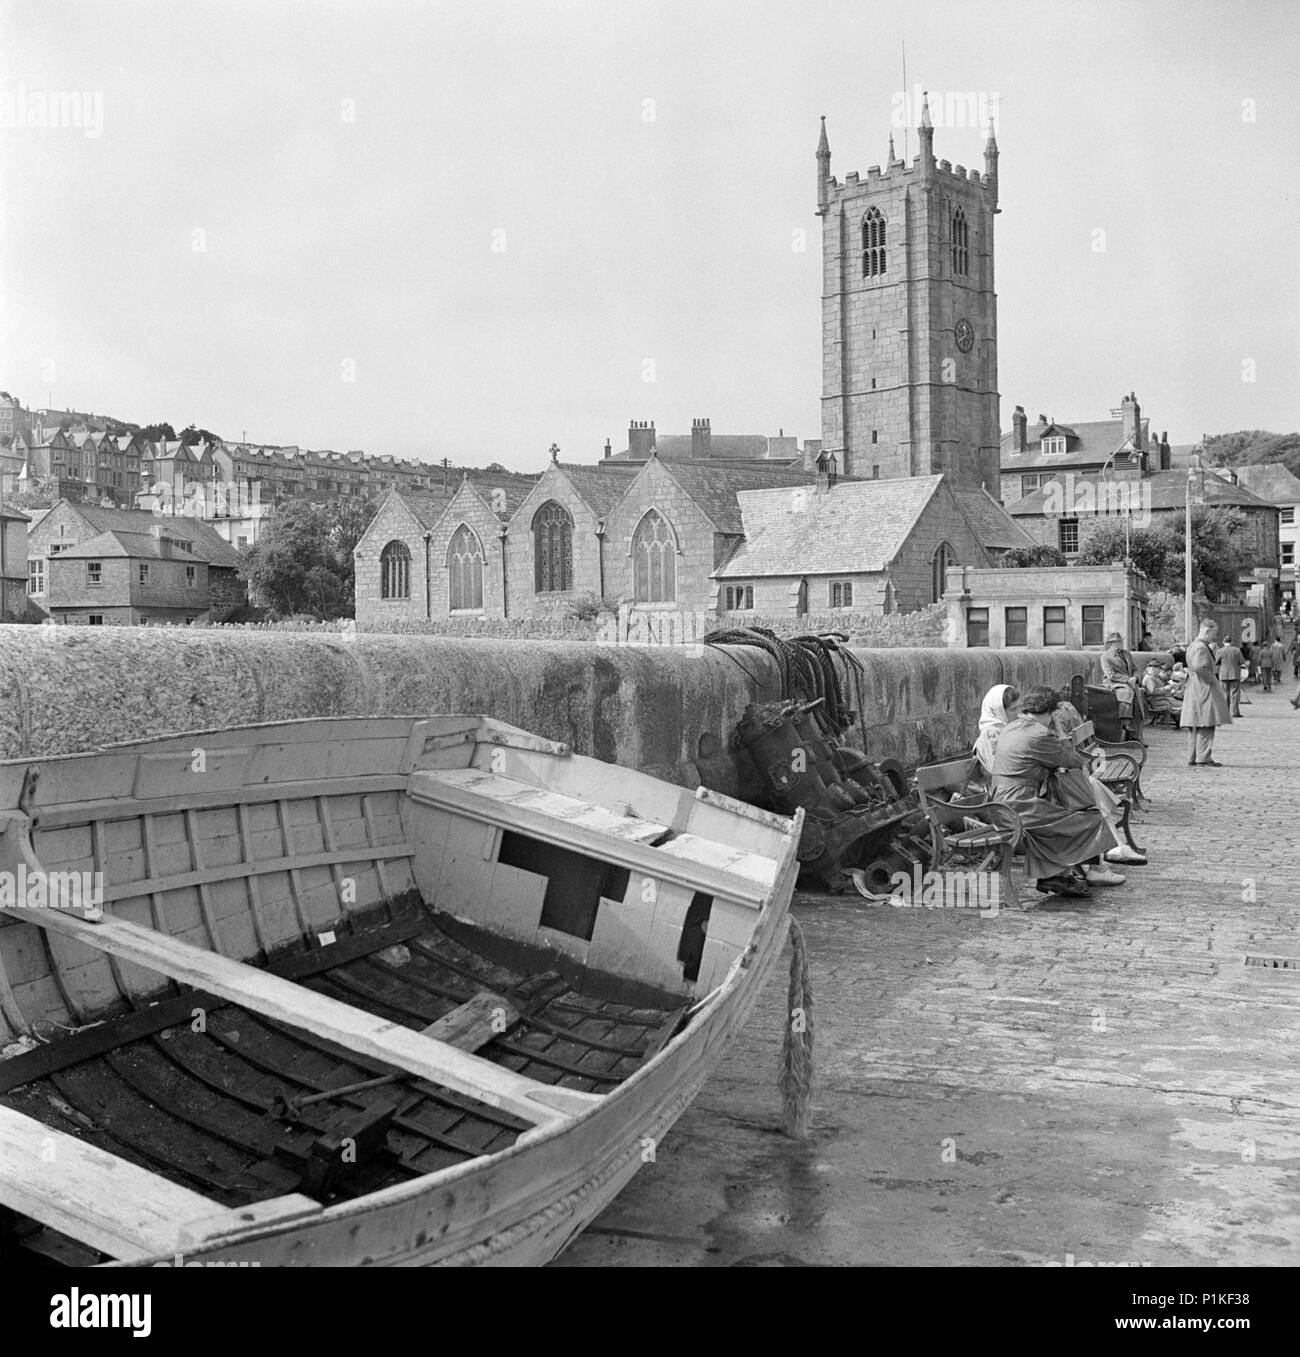 St Ia's Church, St Ives, Cornwall, c1945-c1980. The east end of the early 15th-century church of St Ia, St Ives, seen from the harbour. A boat is pull - Stock Image